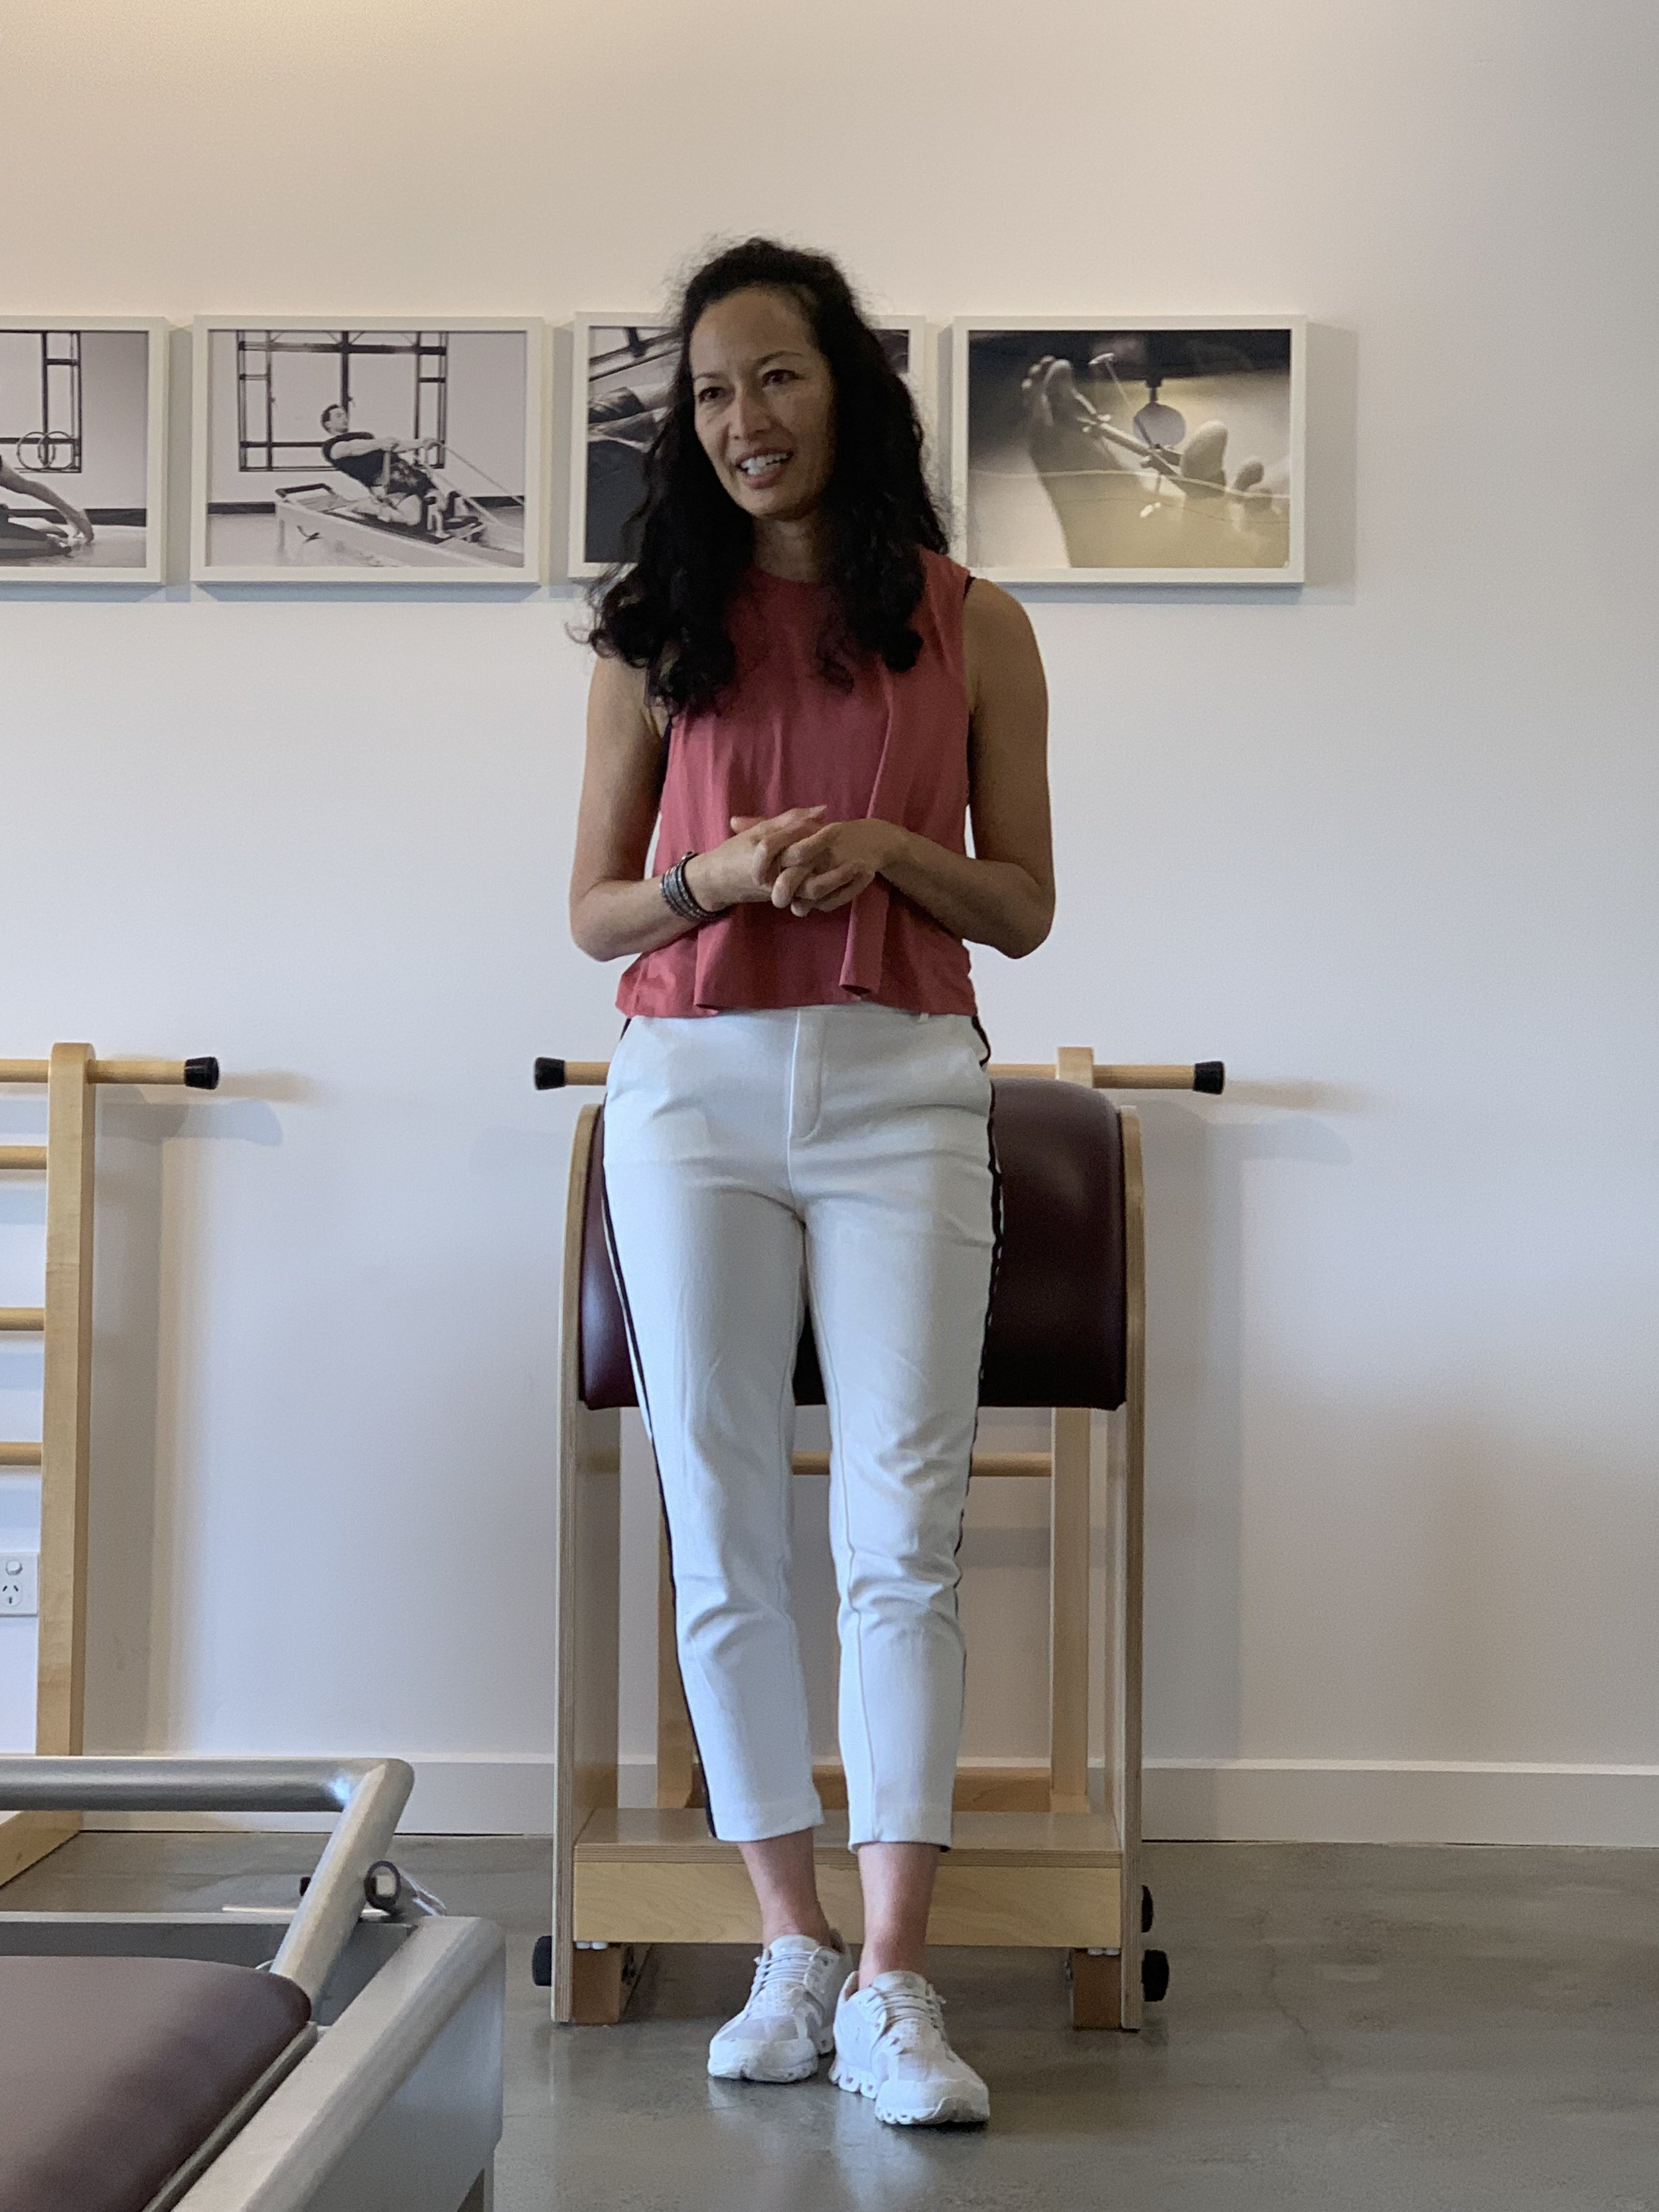 The incredible Sandy Shimoda (USA) visits Proper Pilates in 2018